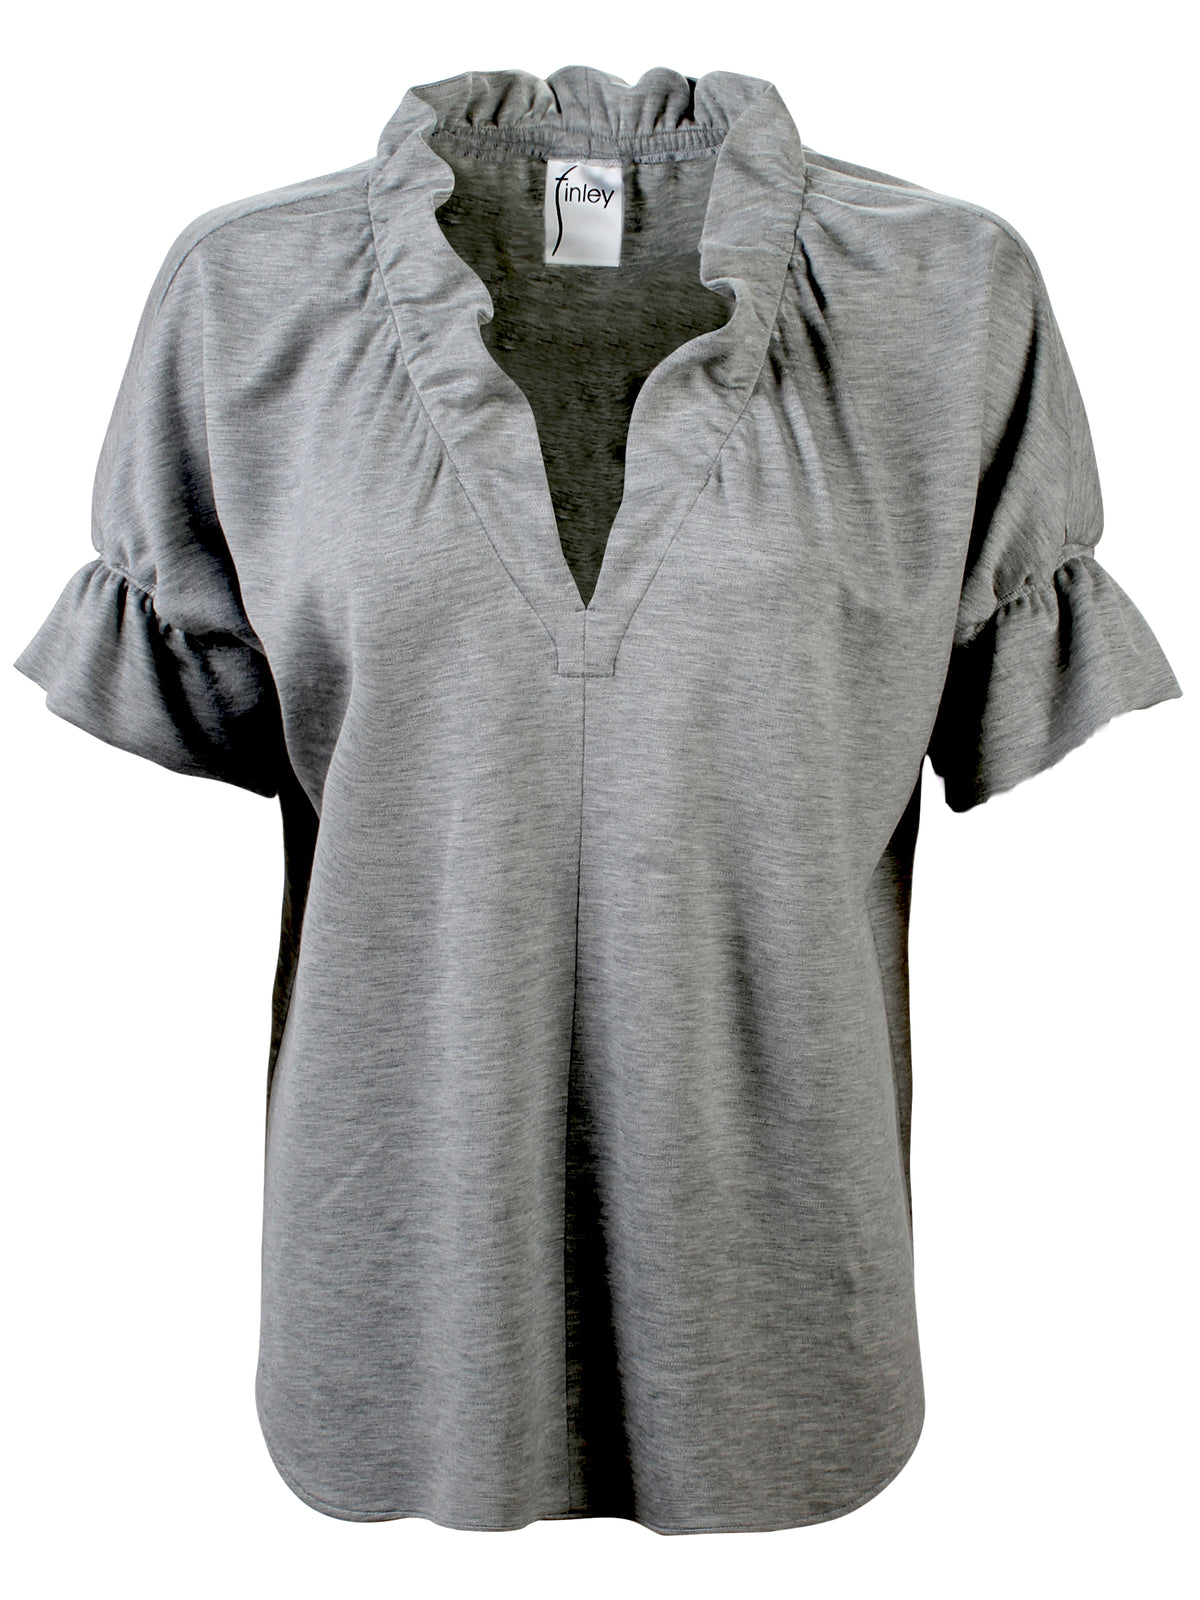 CROSBY TOP GREY MELANGE KNIT